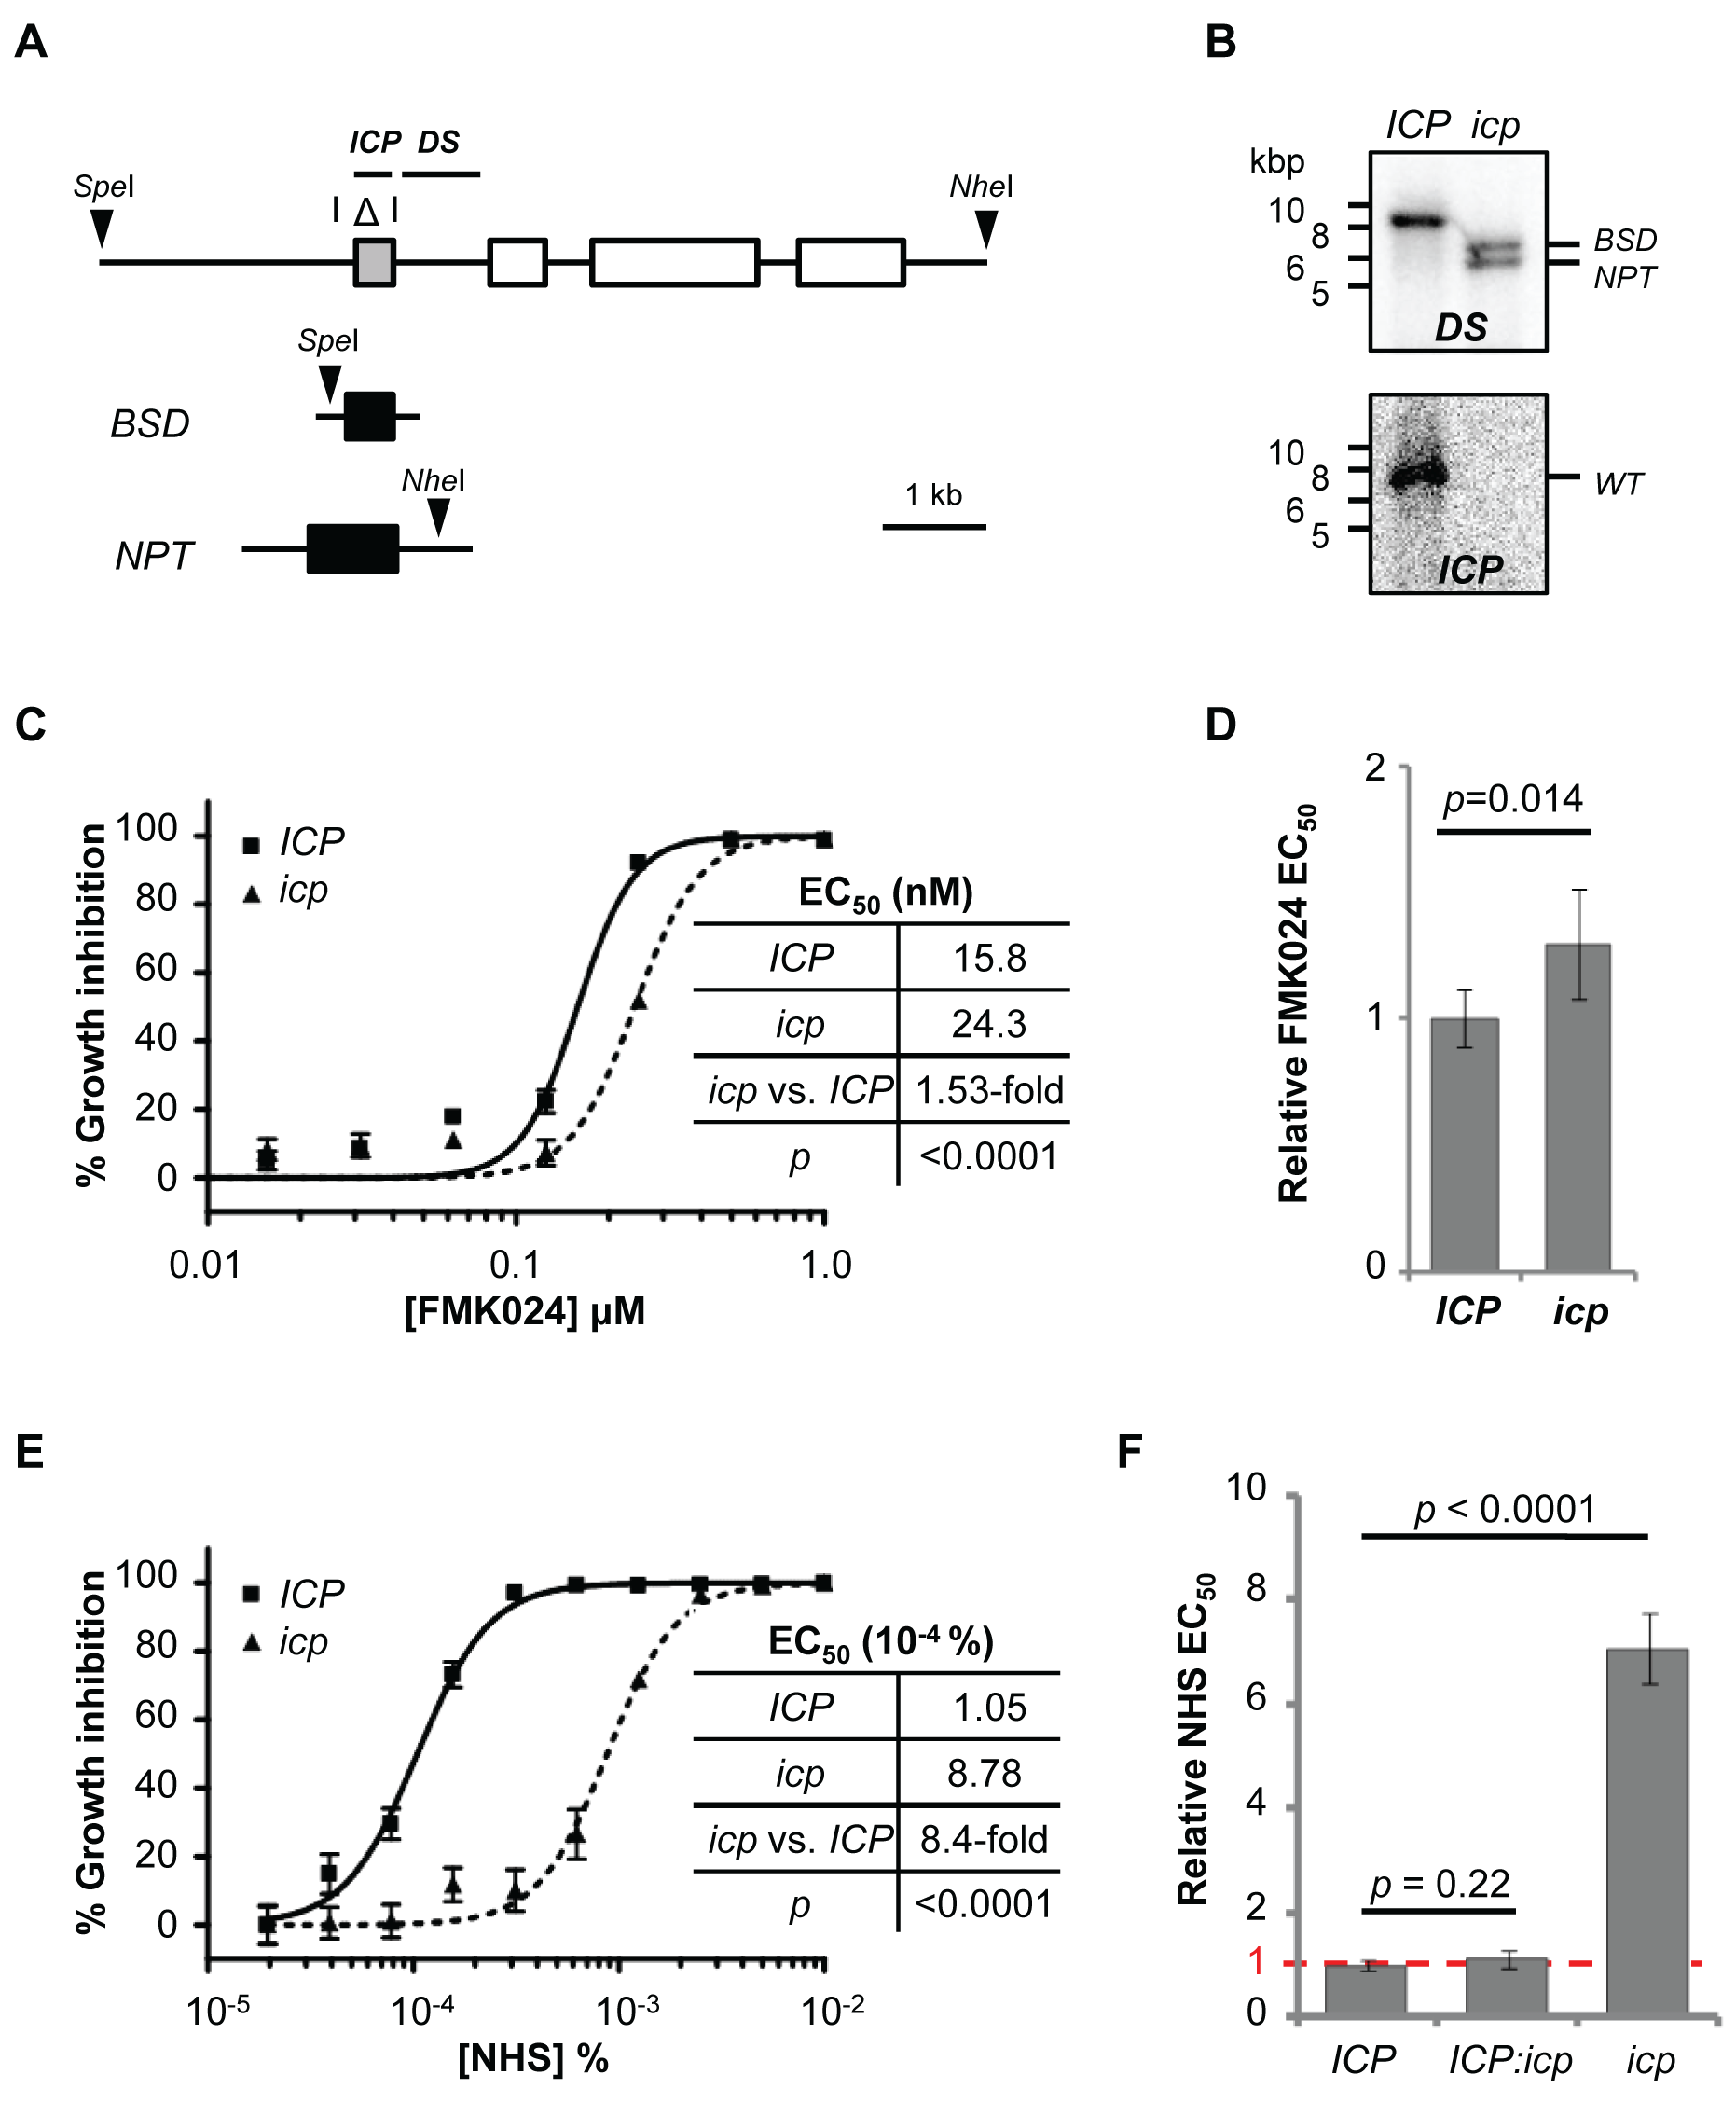 Disruption of <i>ICP</i> in <i>T. b. brucei</i> renders cells less sensitive to NHS.